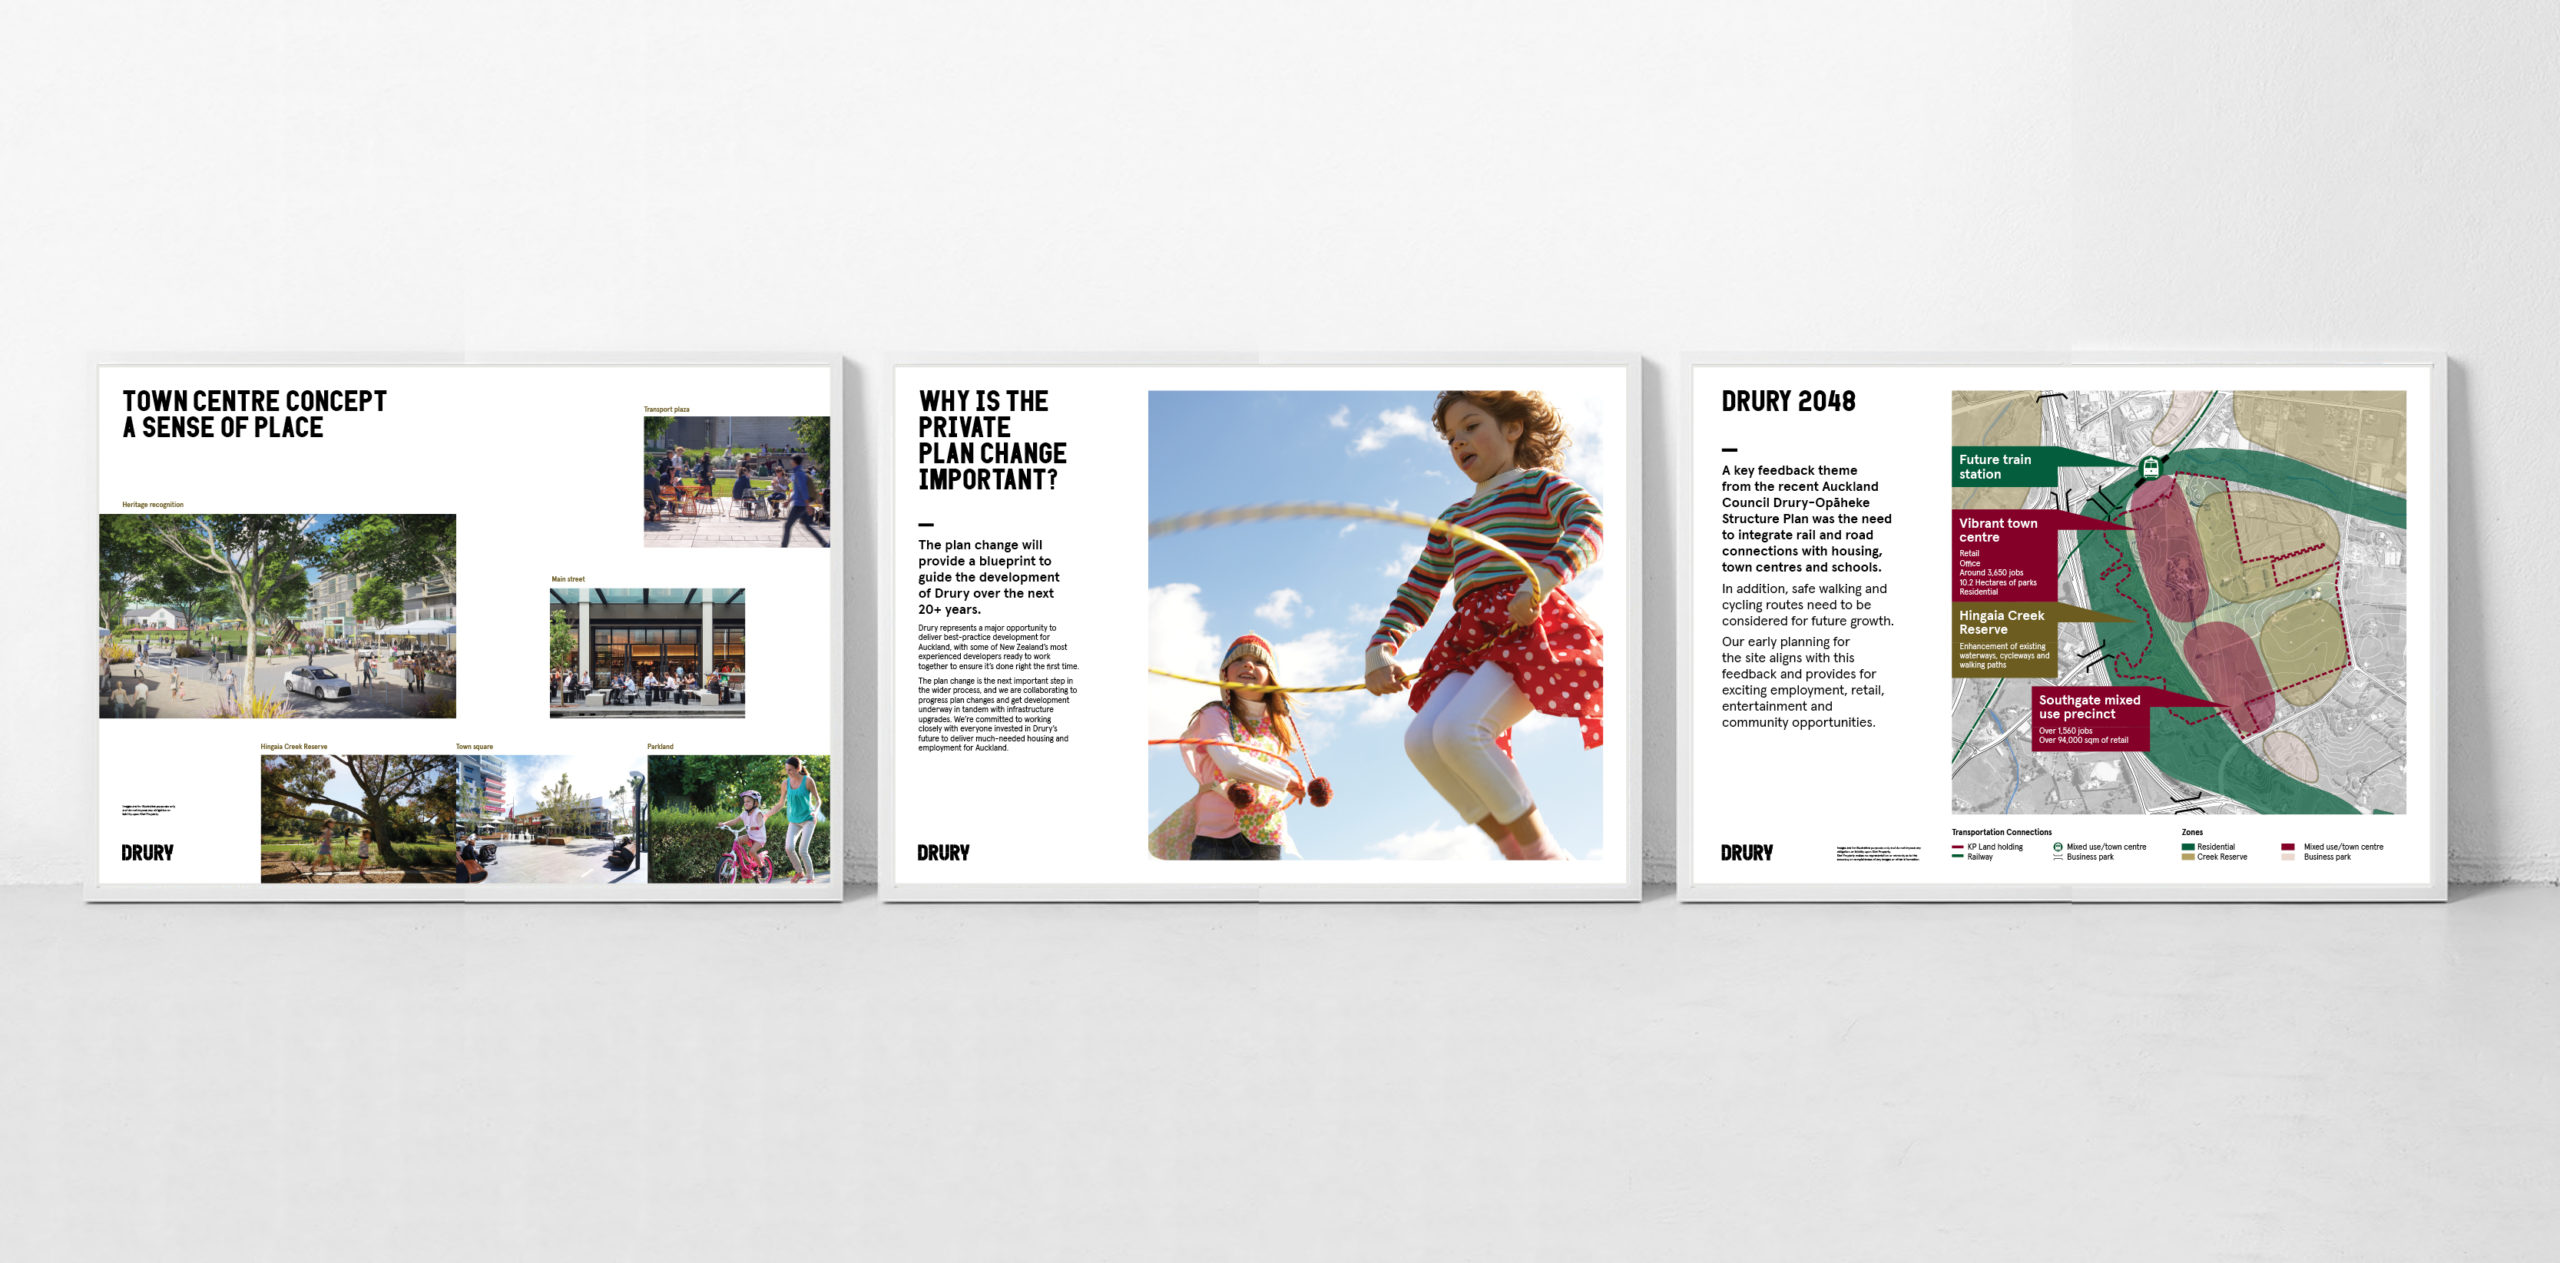 series of large scale presentation boards with white backgrounds and imagery depicting future development Drury community development communications